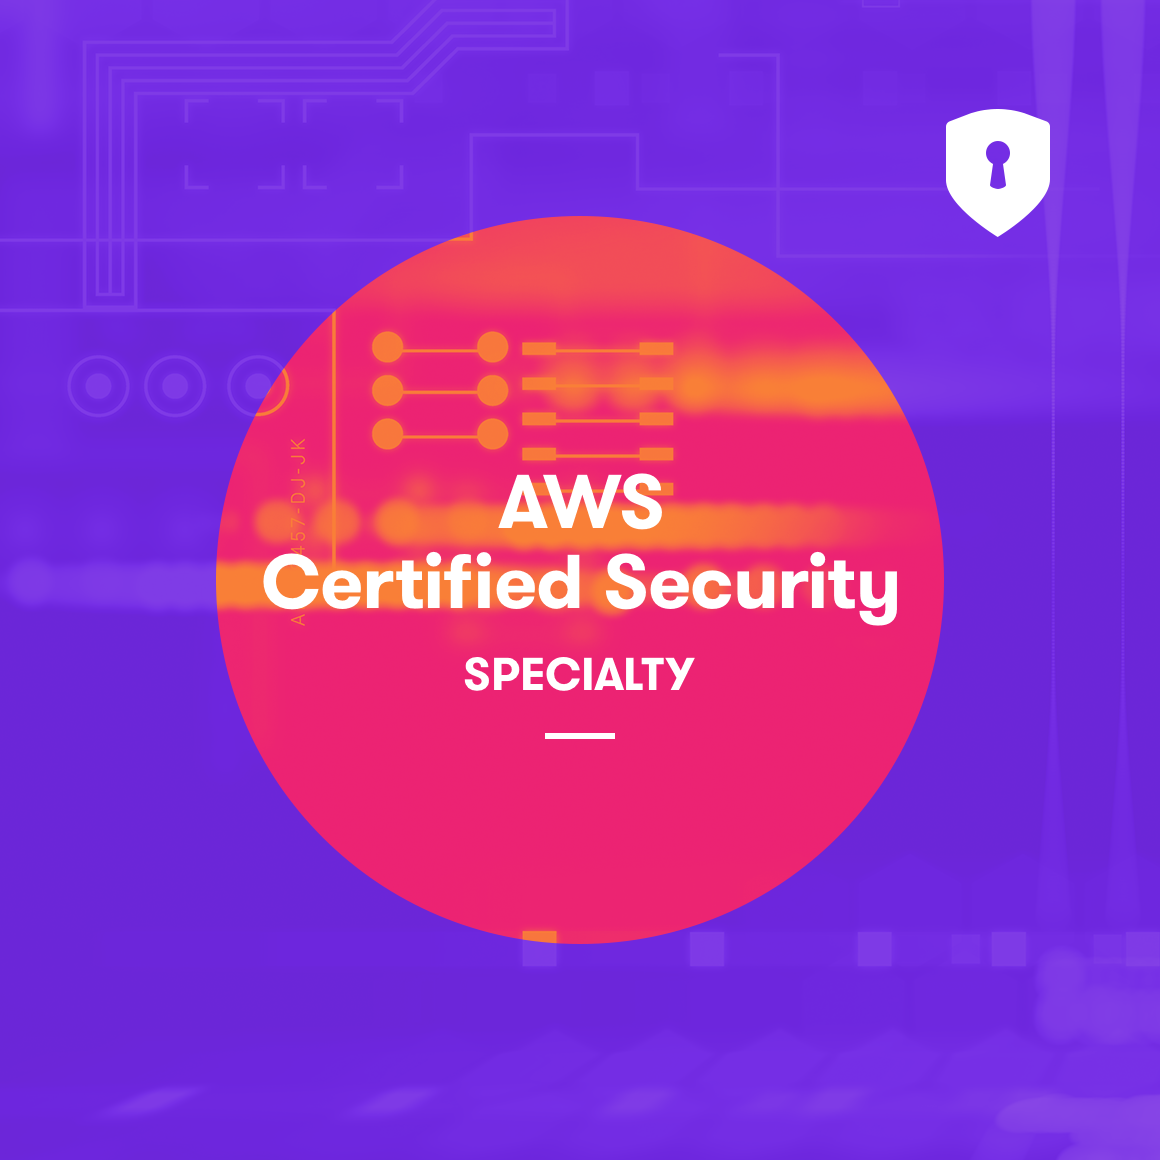 AWS Certified Security - Specialty 2019 | A Cloud Guru